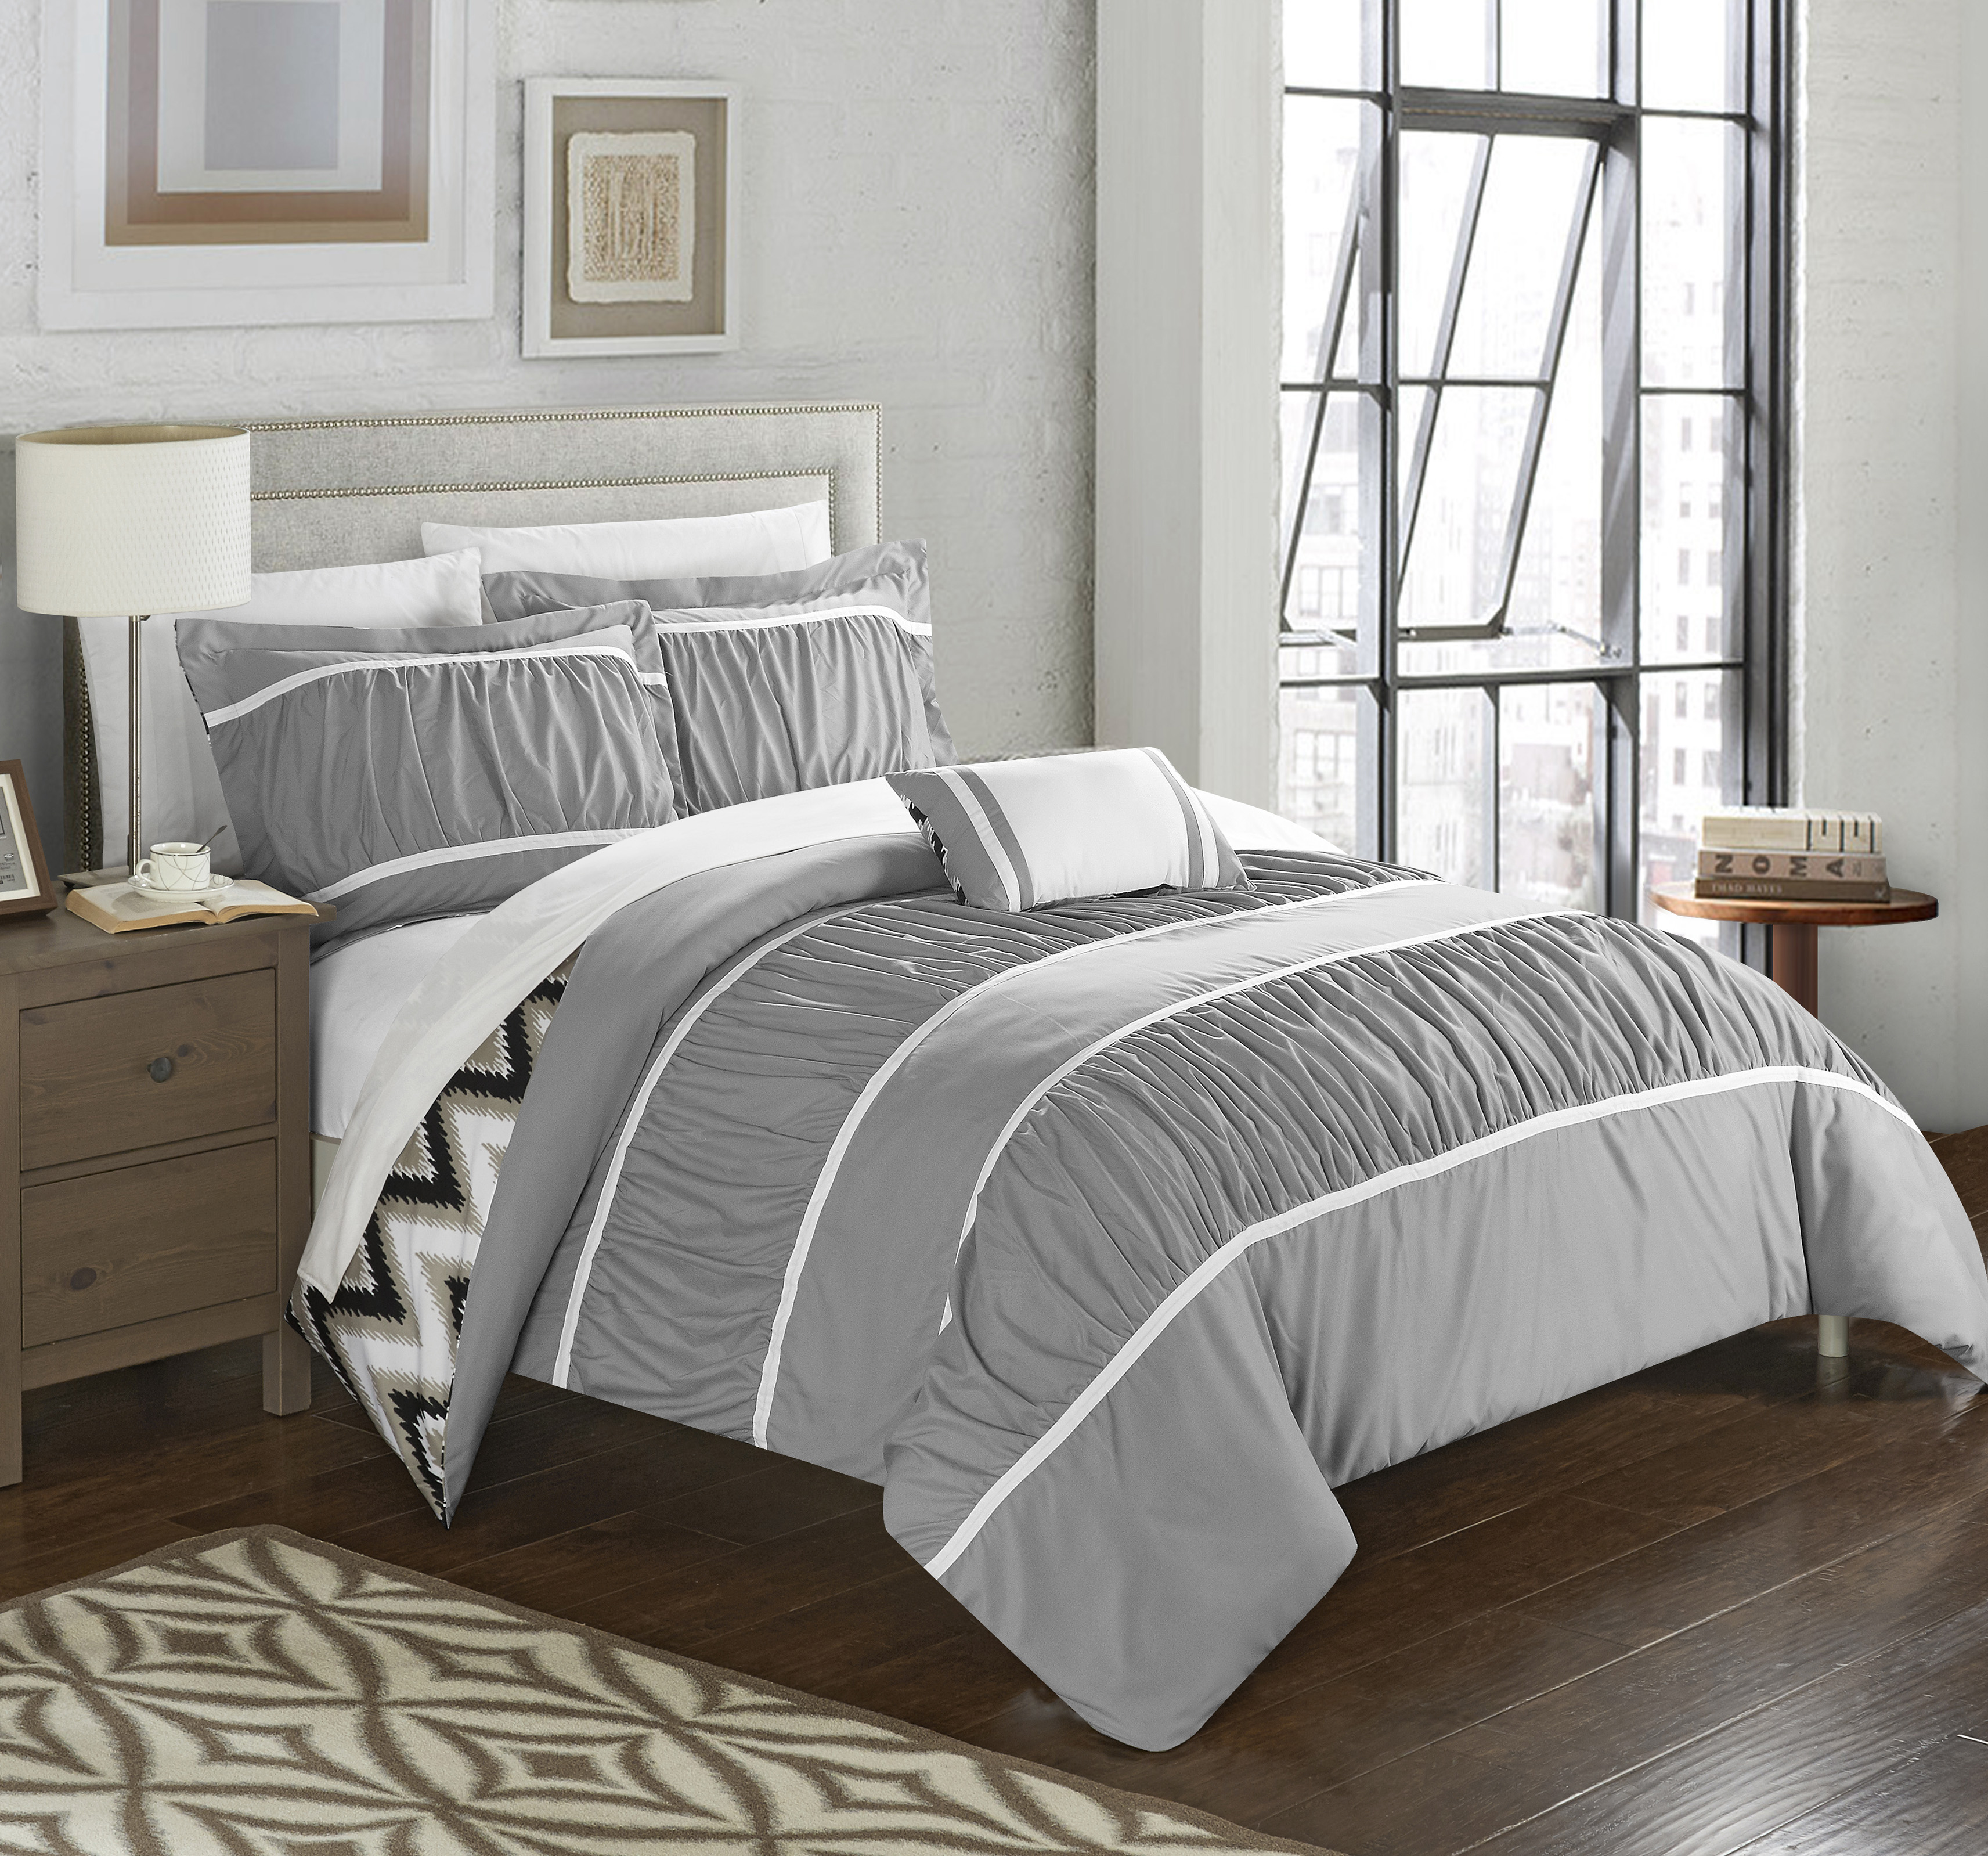 Chic Home 4-Piece Brooks Pleated & Ruffled with Chevron REVERSIBLE Backing Comforter Set with Shams and Decorative Pillows Included